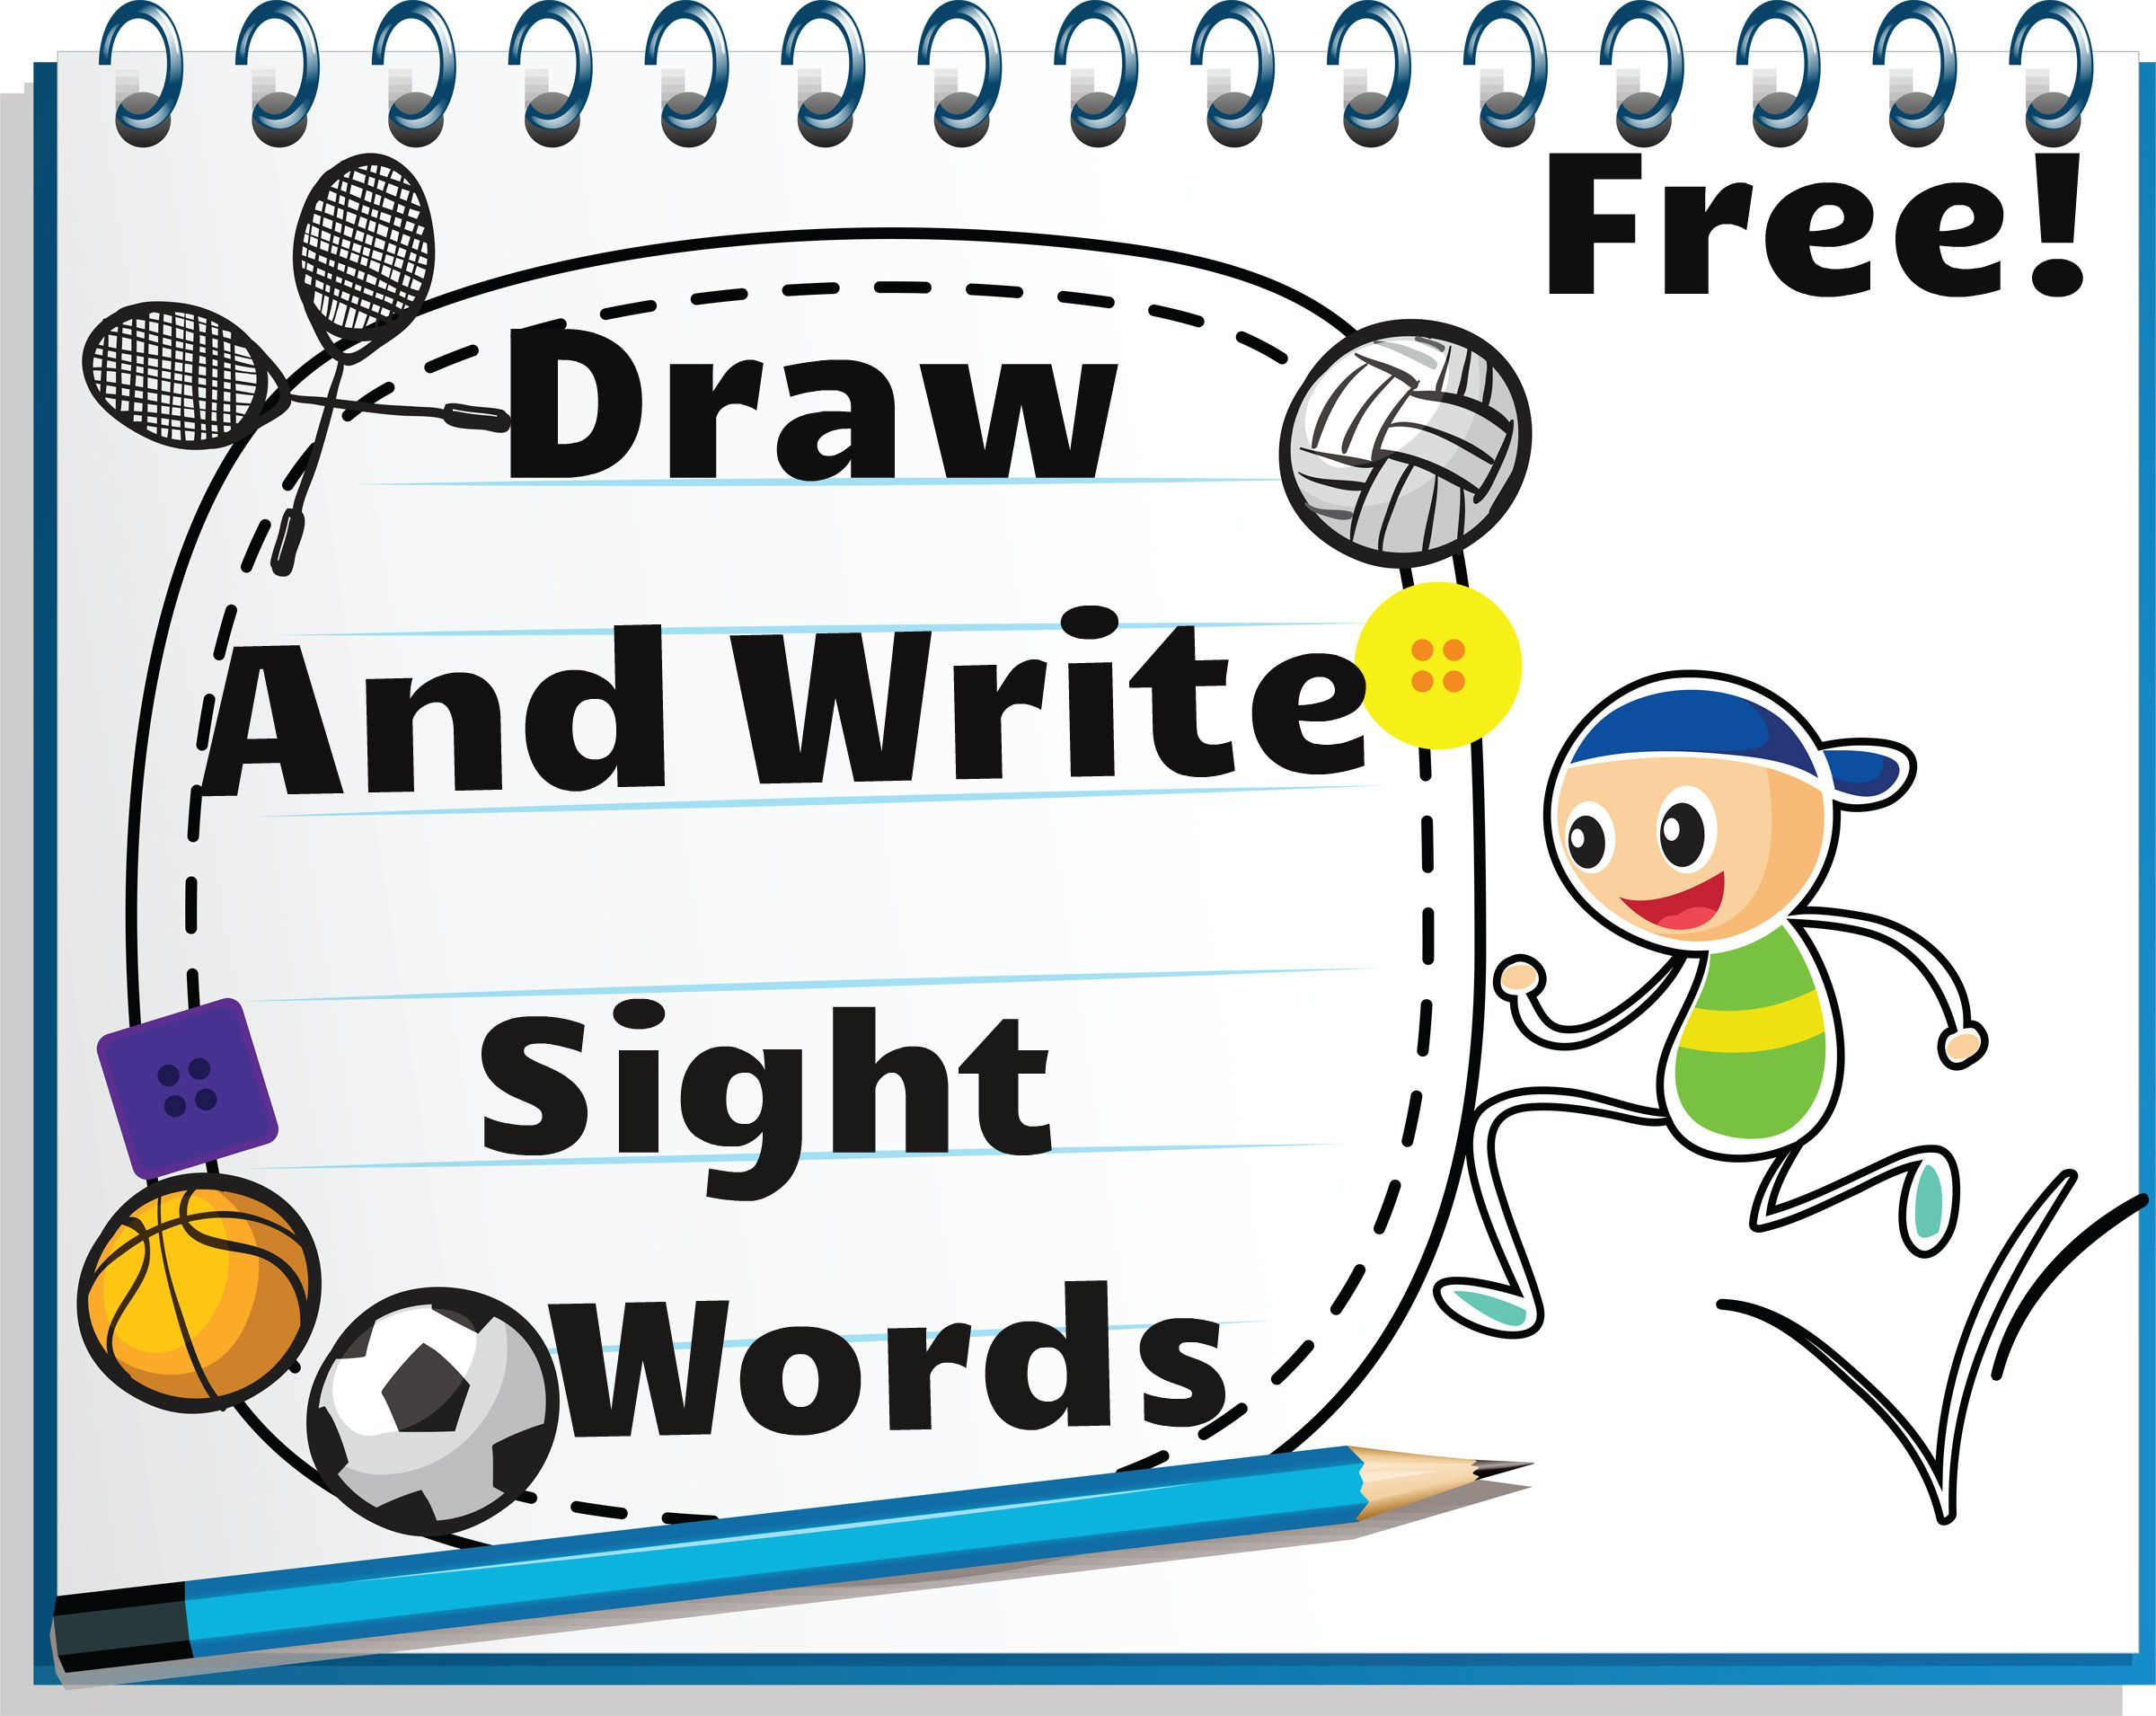 Draw And Write Sight Words Worksheets Great Resource To Teach Sight Words In The Context Of